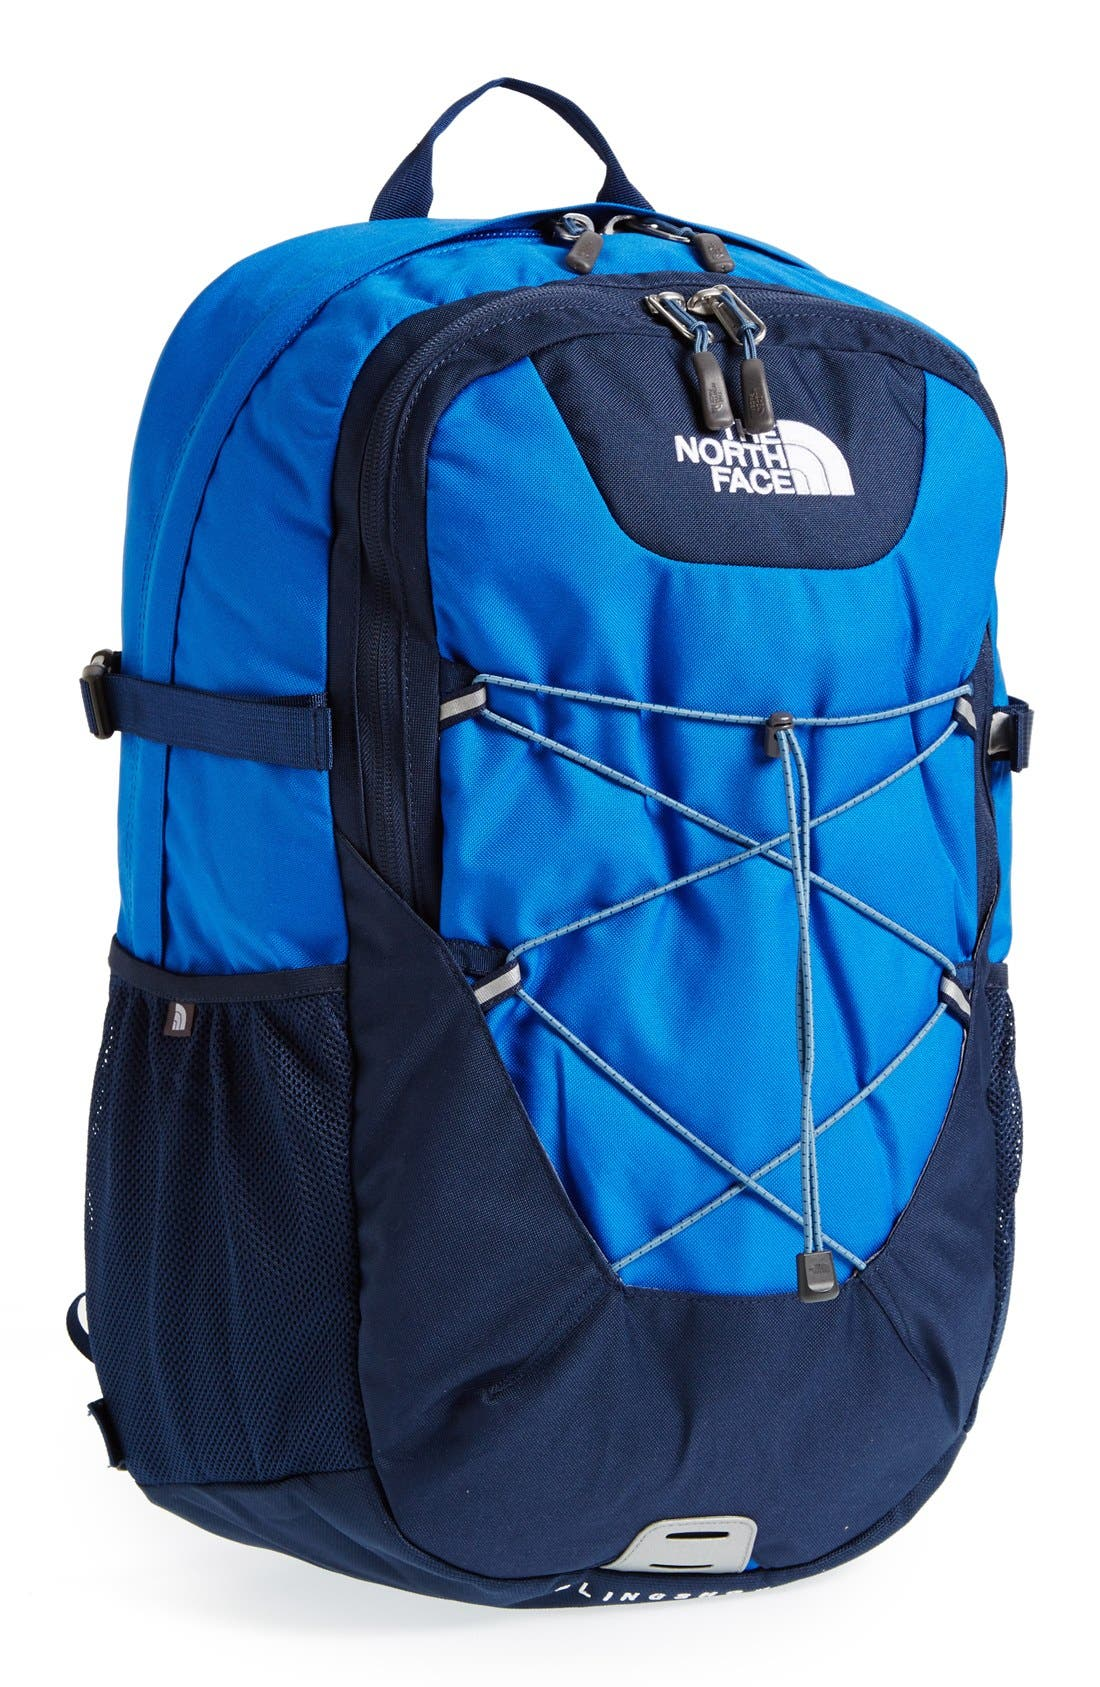 Alternate Image 1 Selected - The North Face 'Slingshot' Backpack